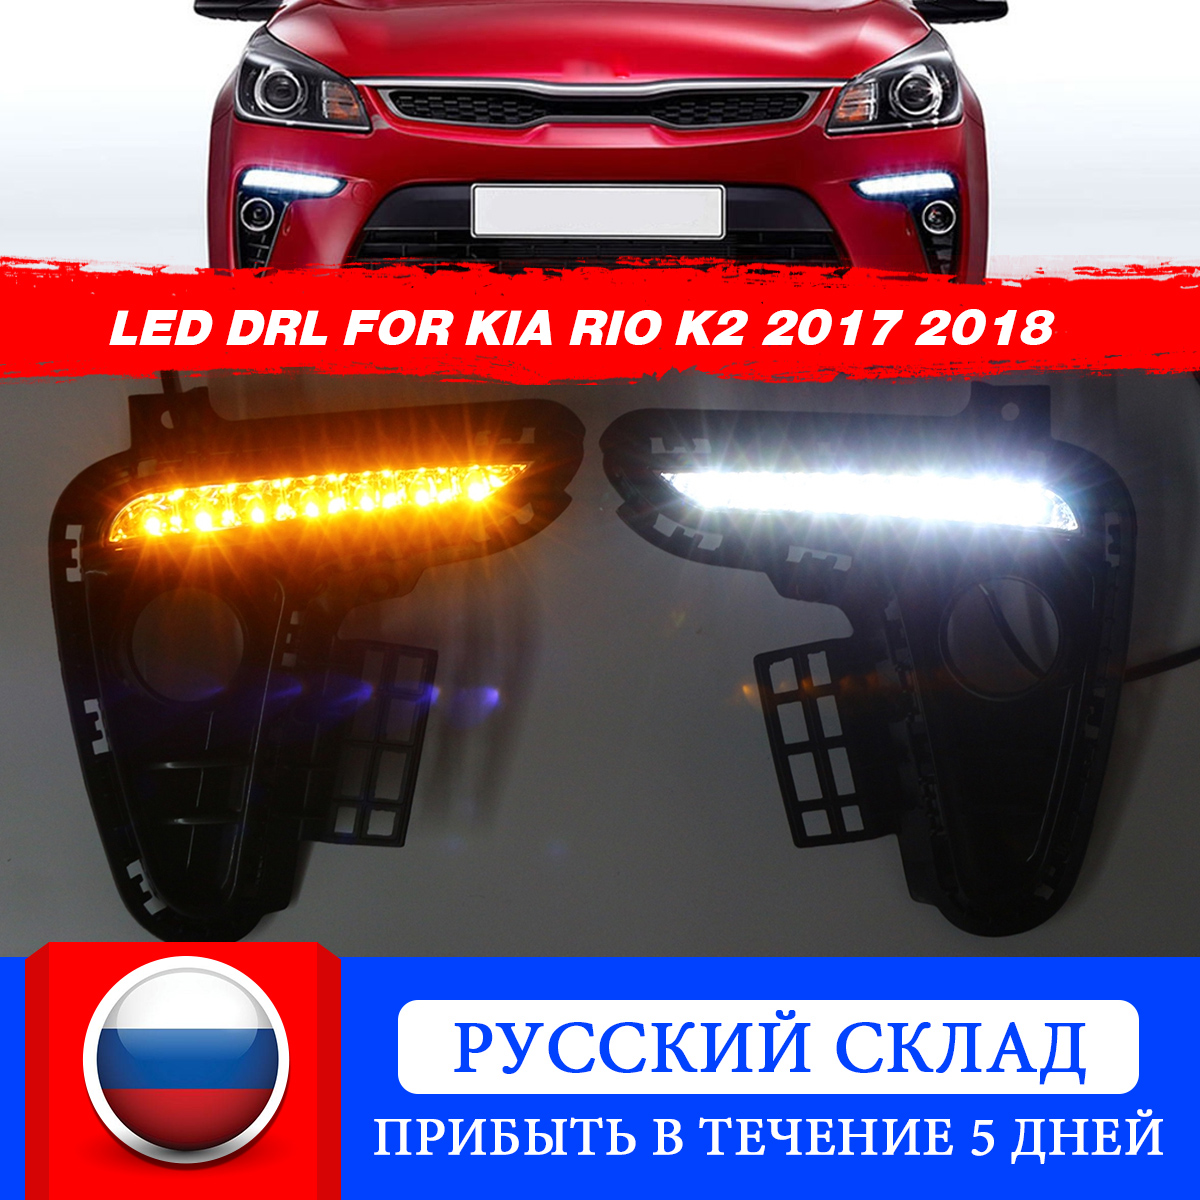 1Pair LED DRL 12V Car Front Bumper For Kia Rio 3 K2 2017 2018 DRL Daytime Running Light Driving Fog Lamp Turn Signal Styling1Pair LED DRL 12V Car Front Bumper For Kia Rio 3 K2 2017 2018 DRL Daytime Running Light Driving Fog Lamp Turn Signal Styling